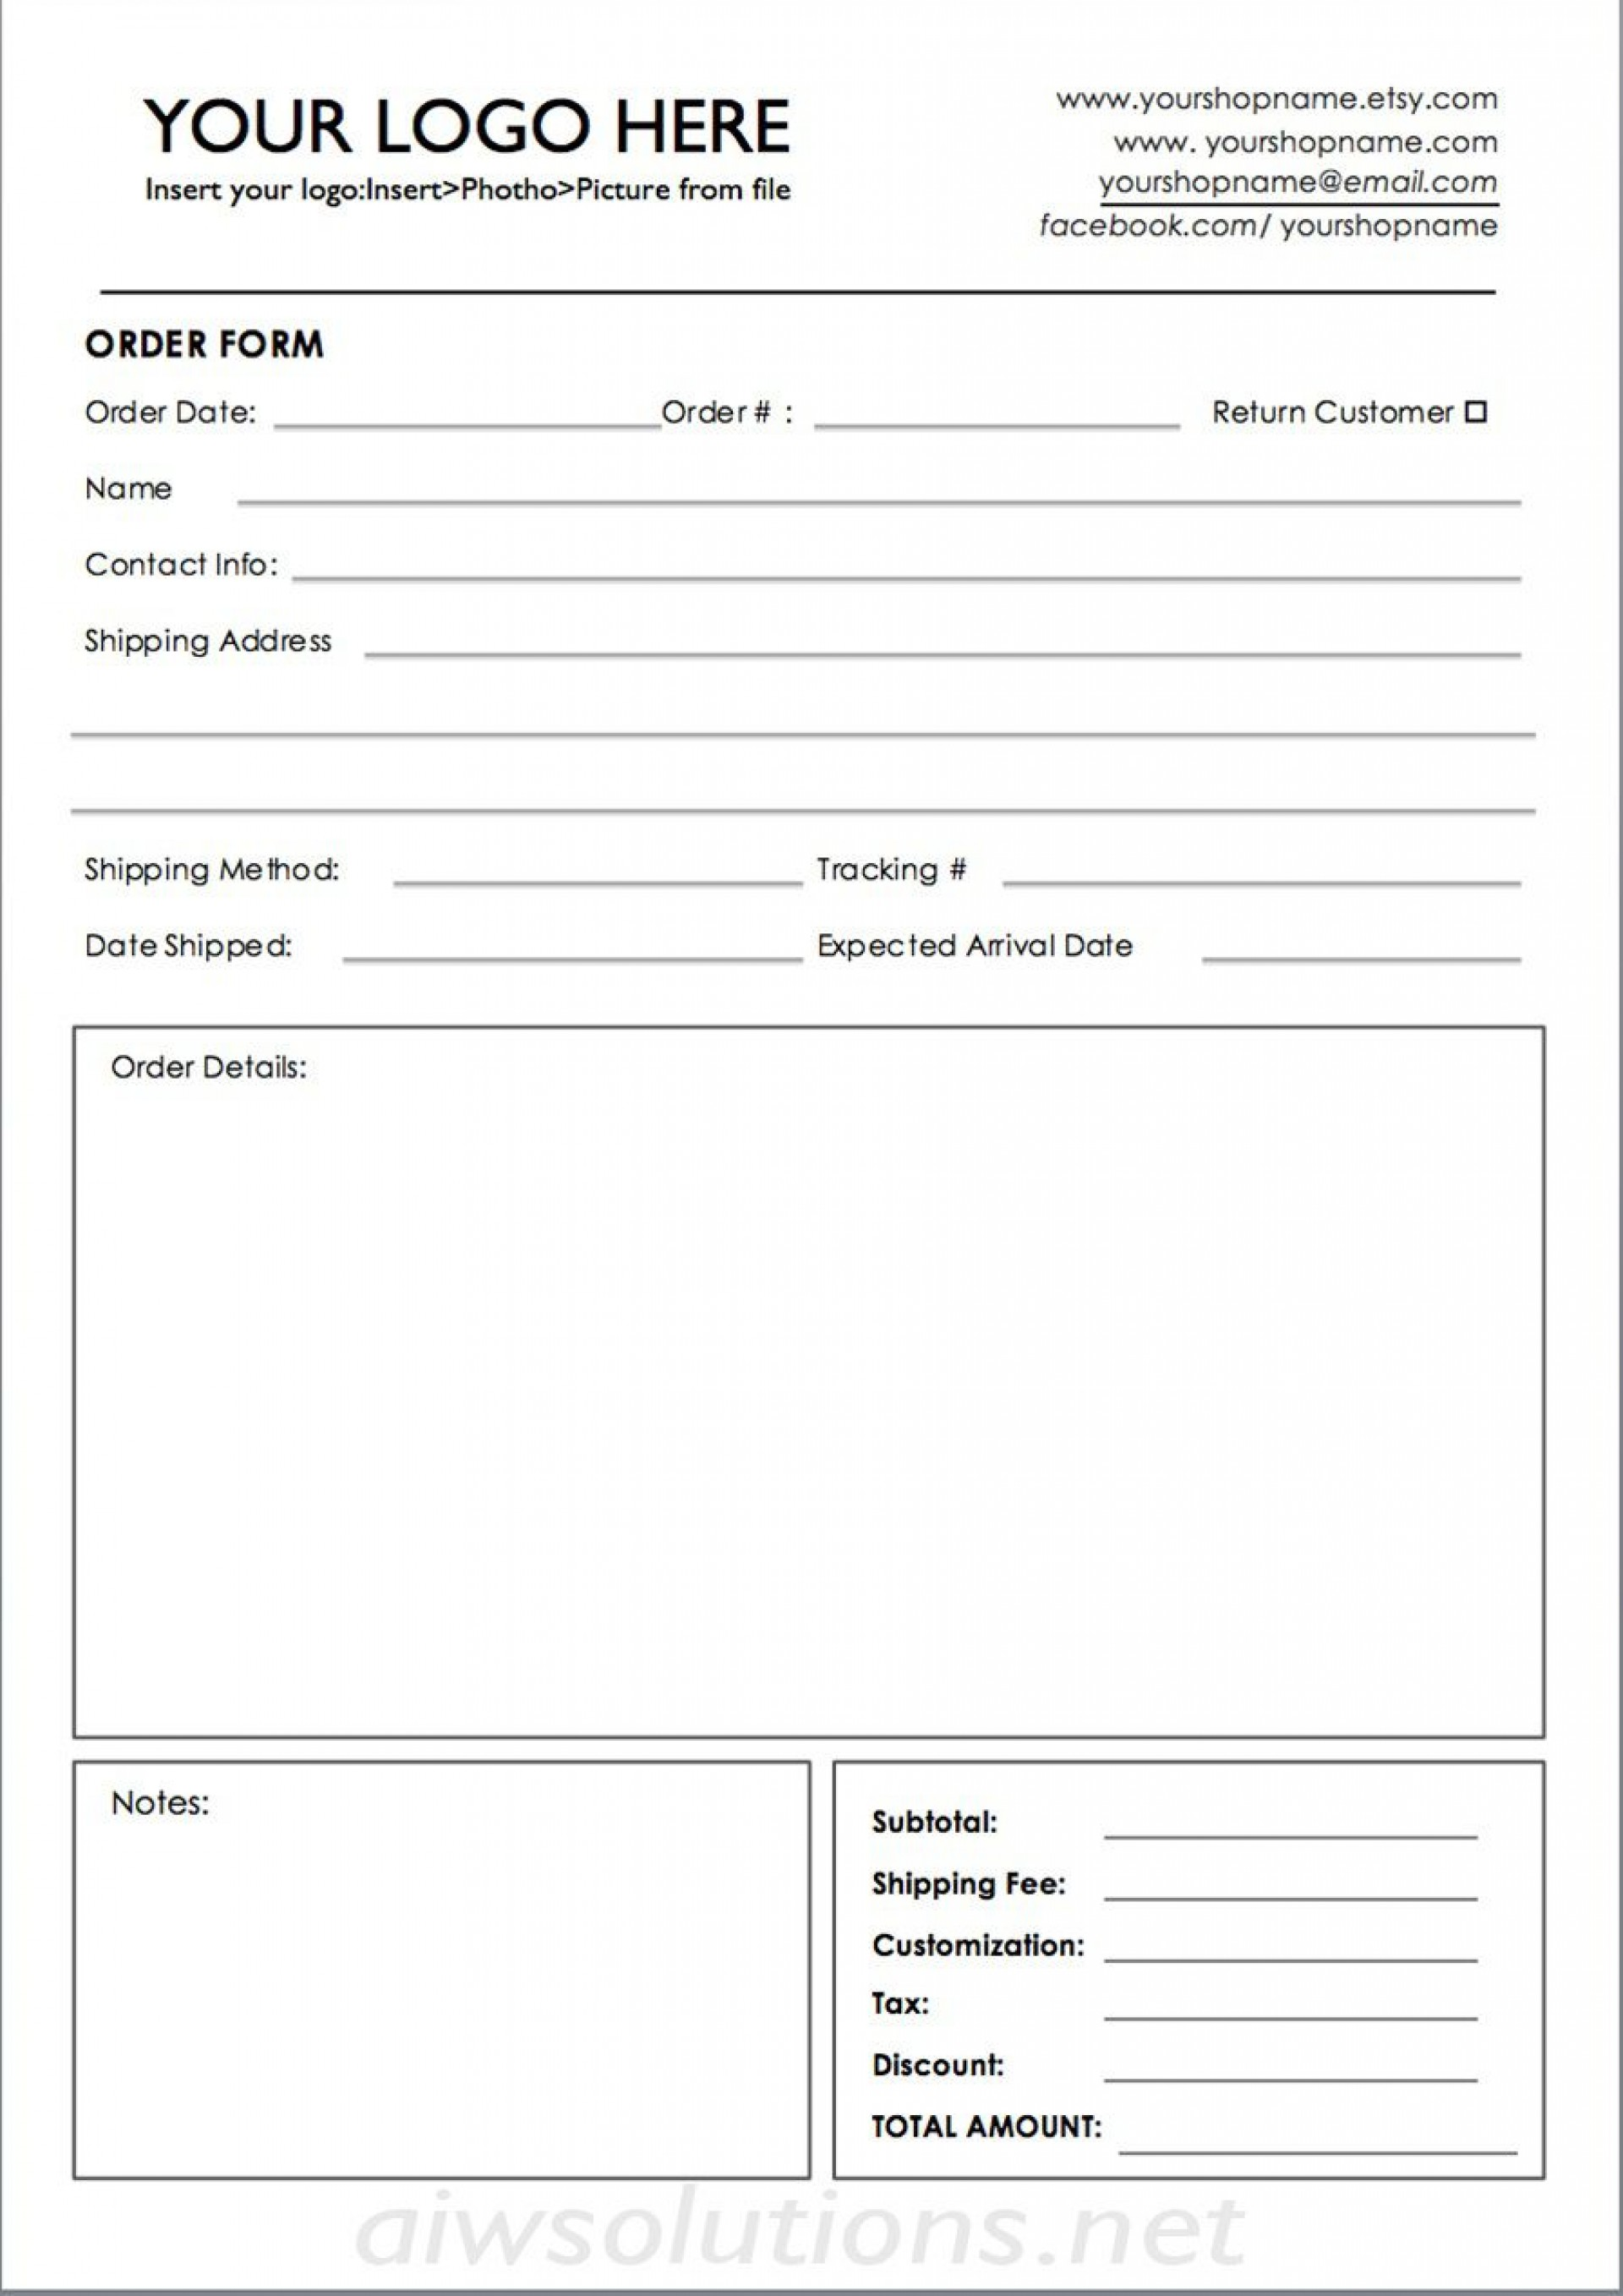 009 Unforgettable Custom Order Form Template Sample  Cake Clothing Work1920